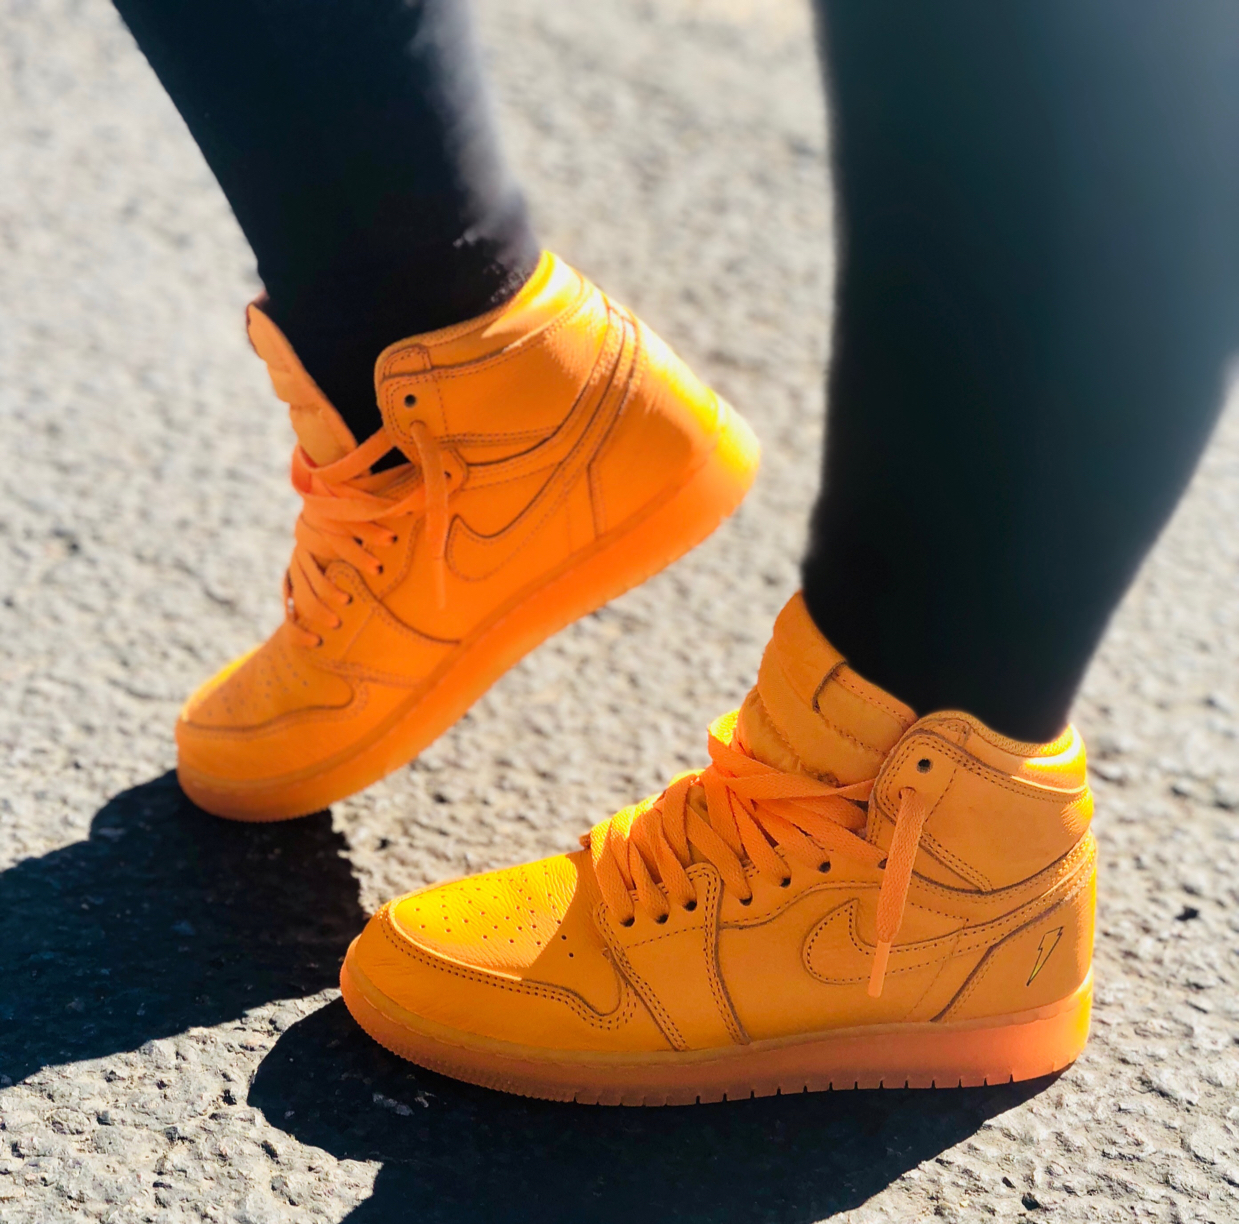 Air Jordan 1 Gatorade Orange Peel